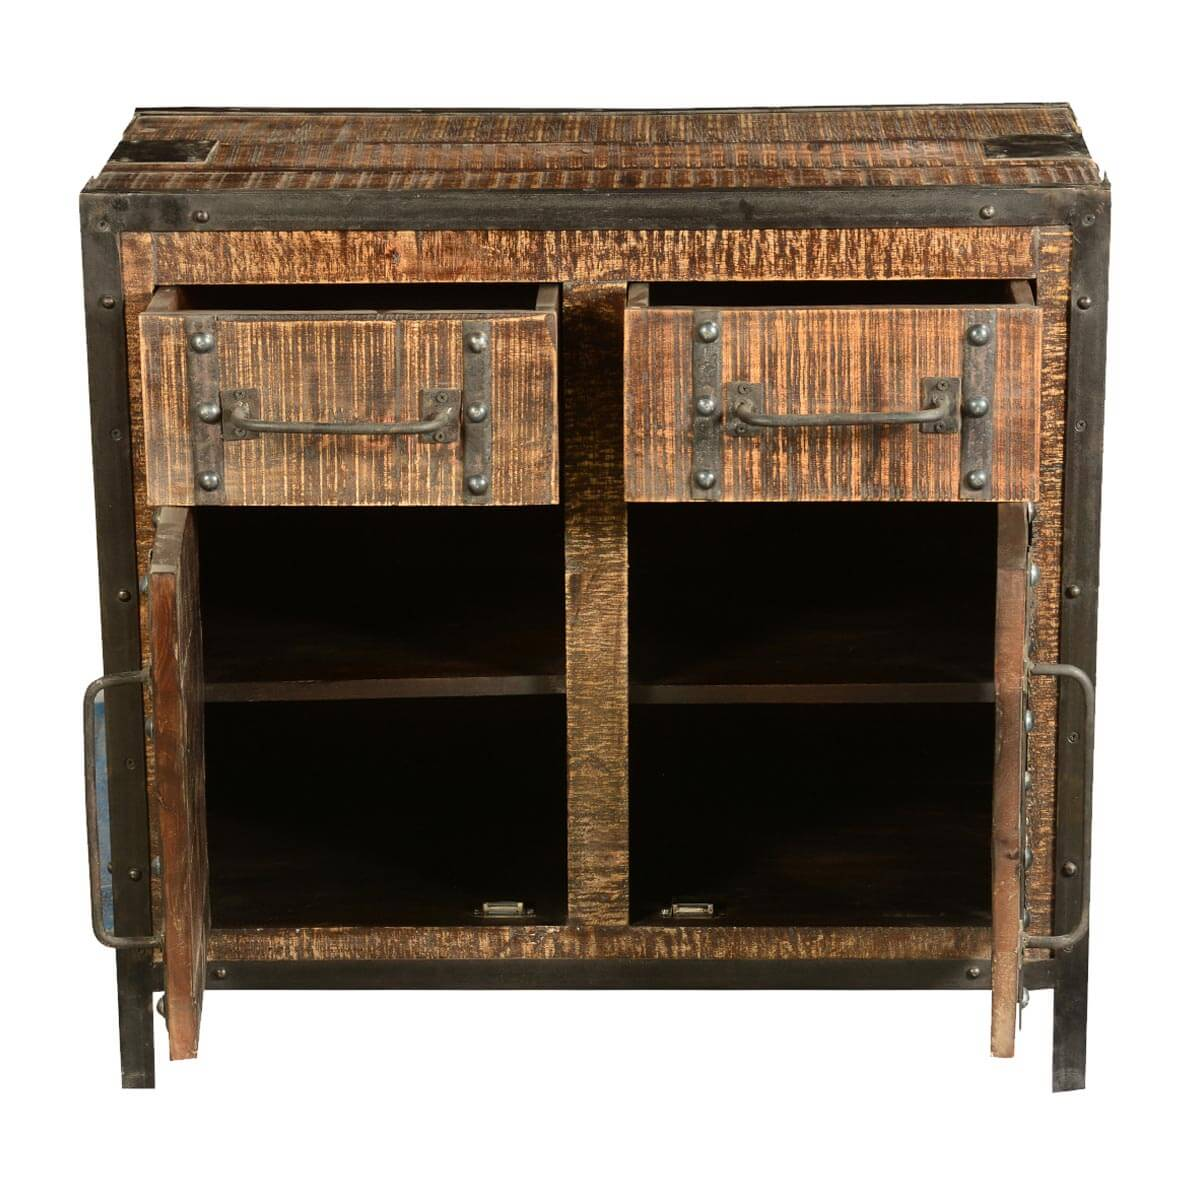 industrial storage cabinet with doors. Industrial Storage Cabinet With Doors T